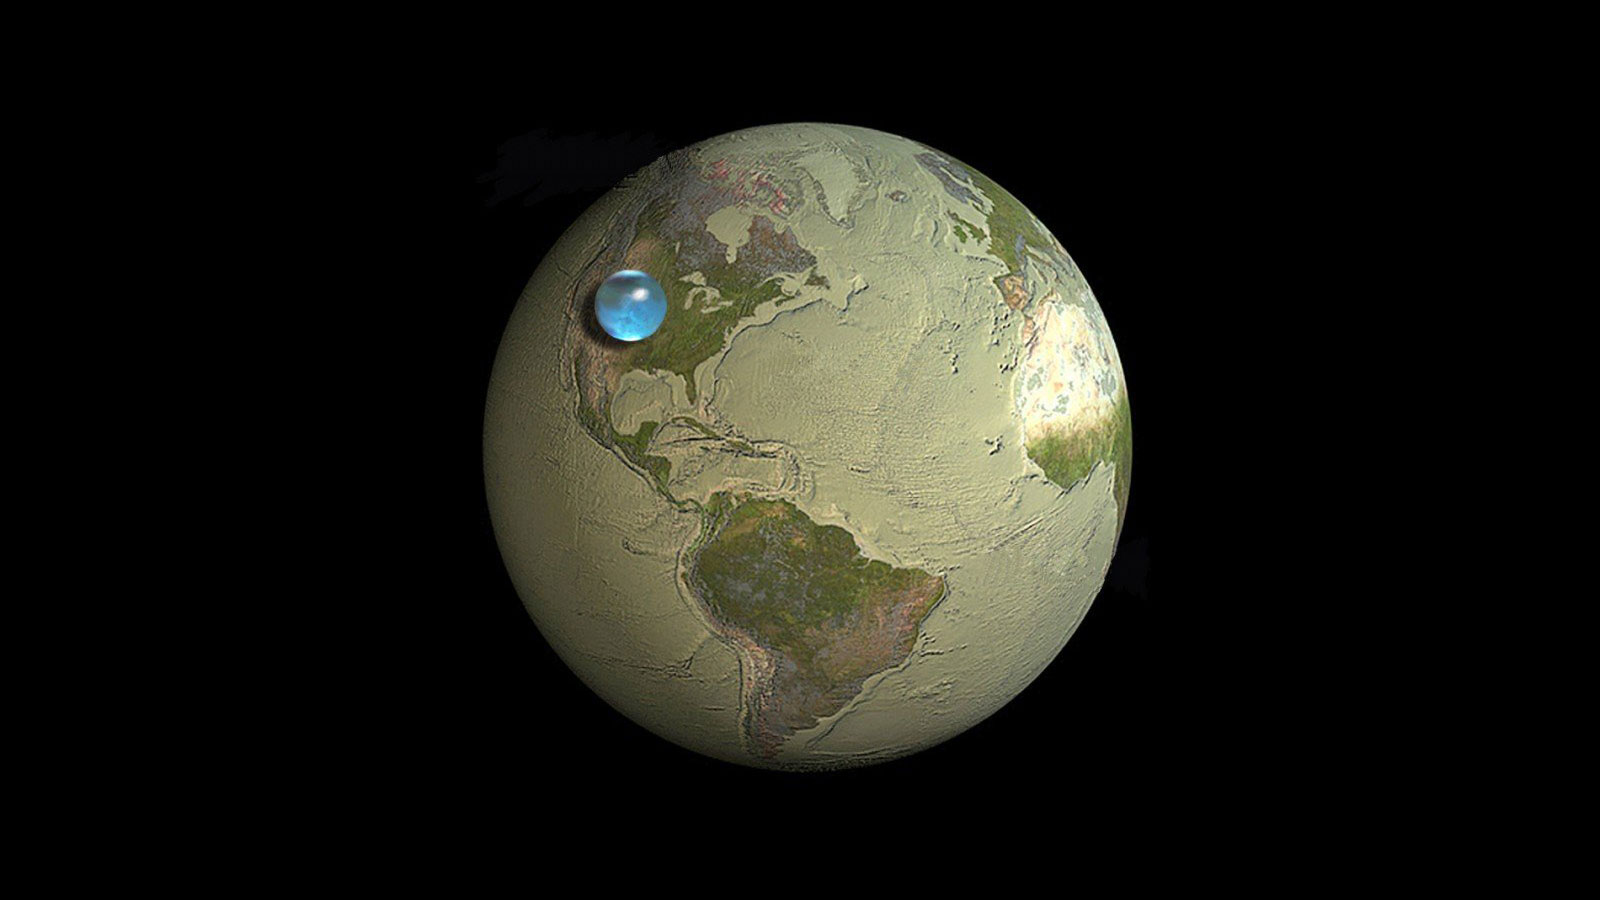 Astronomers finally find the answer to earths water mystery astronomers finally find the answer to earths water mystery malvernweather Choice Image